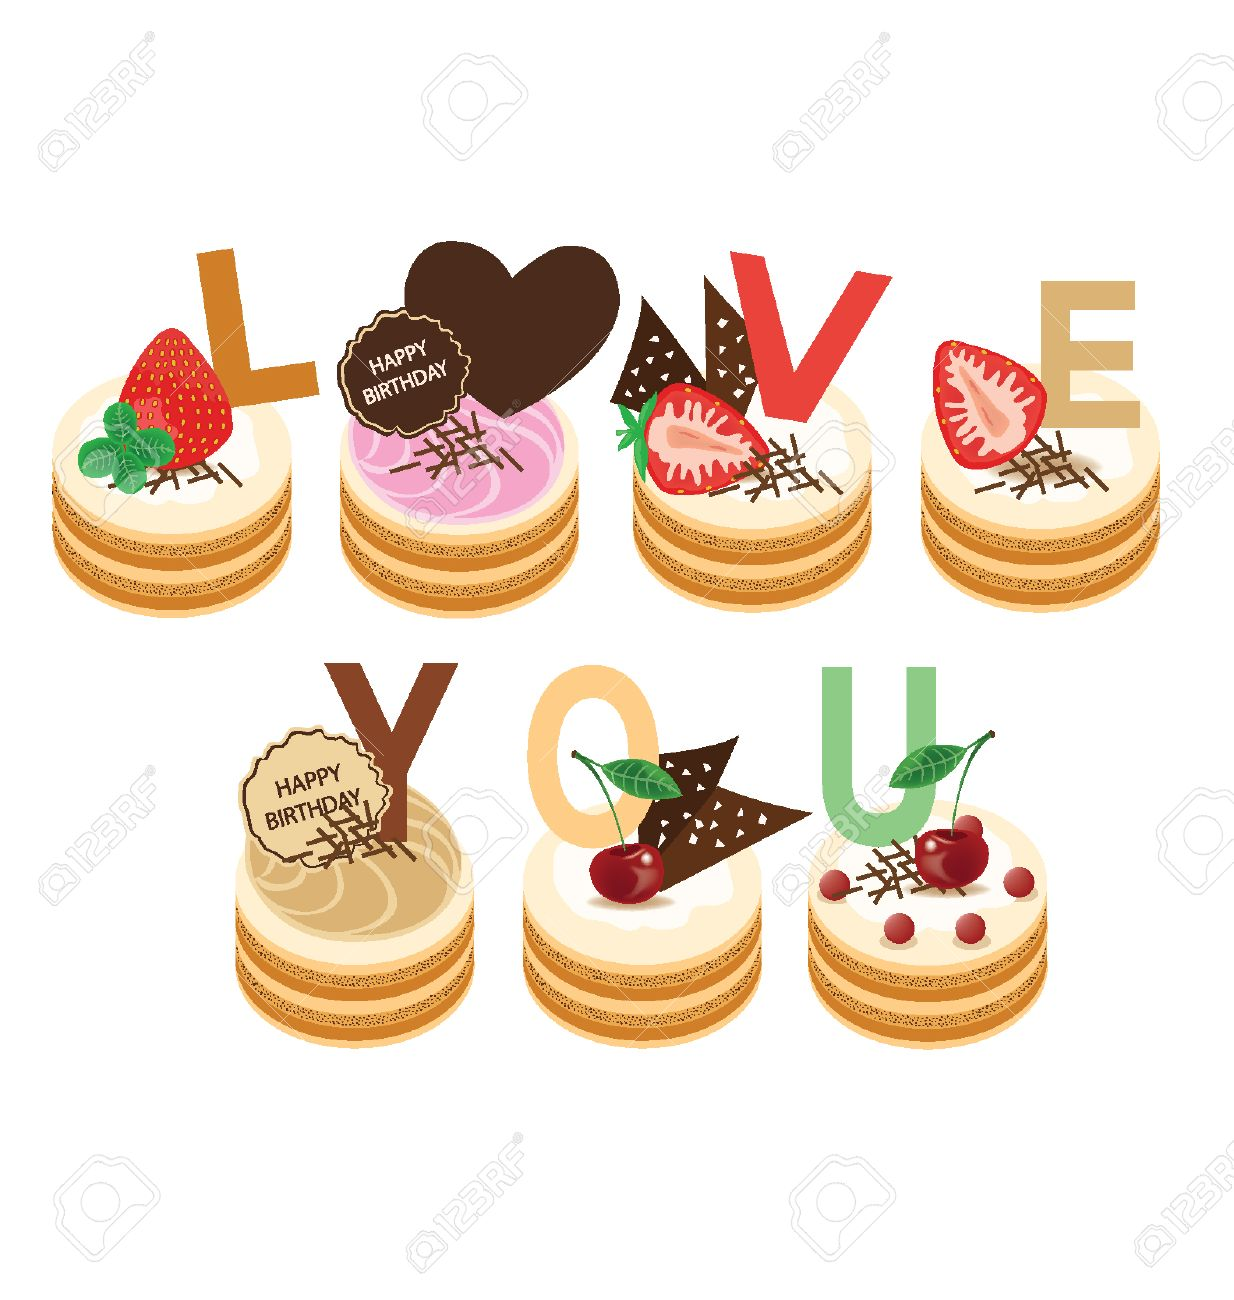 Magnificent Love You Happy Birthday Cake Illustration Royalty Free Cliparts Funny Birthday Cards Online Inifofree Goldxyz